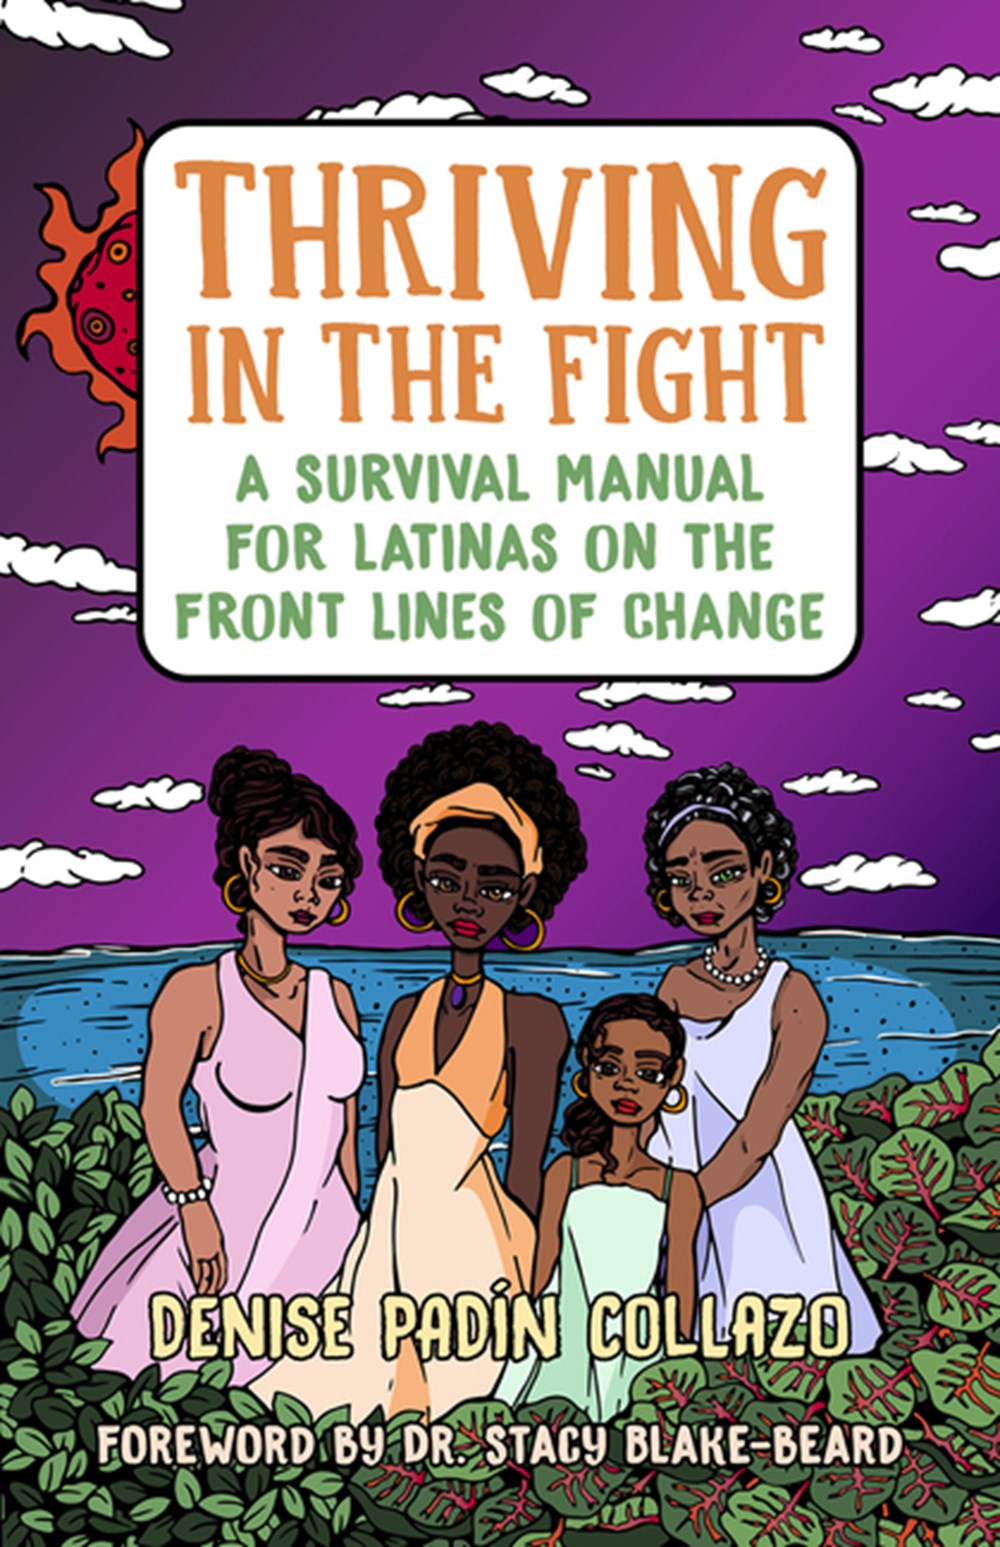 Thriving in the Fight A Survival Manual for Latinas on the Front Lines of Change